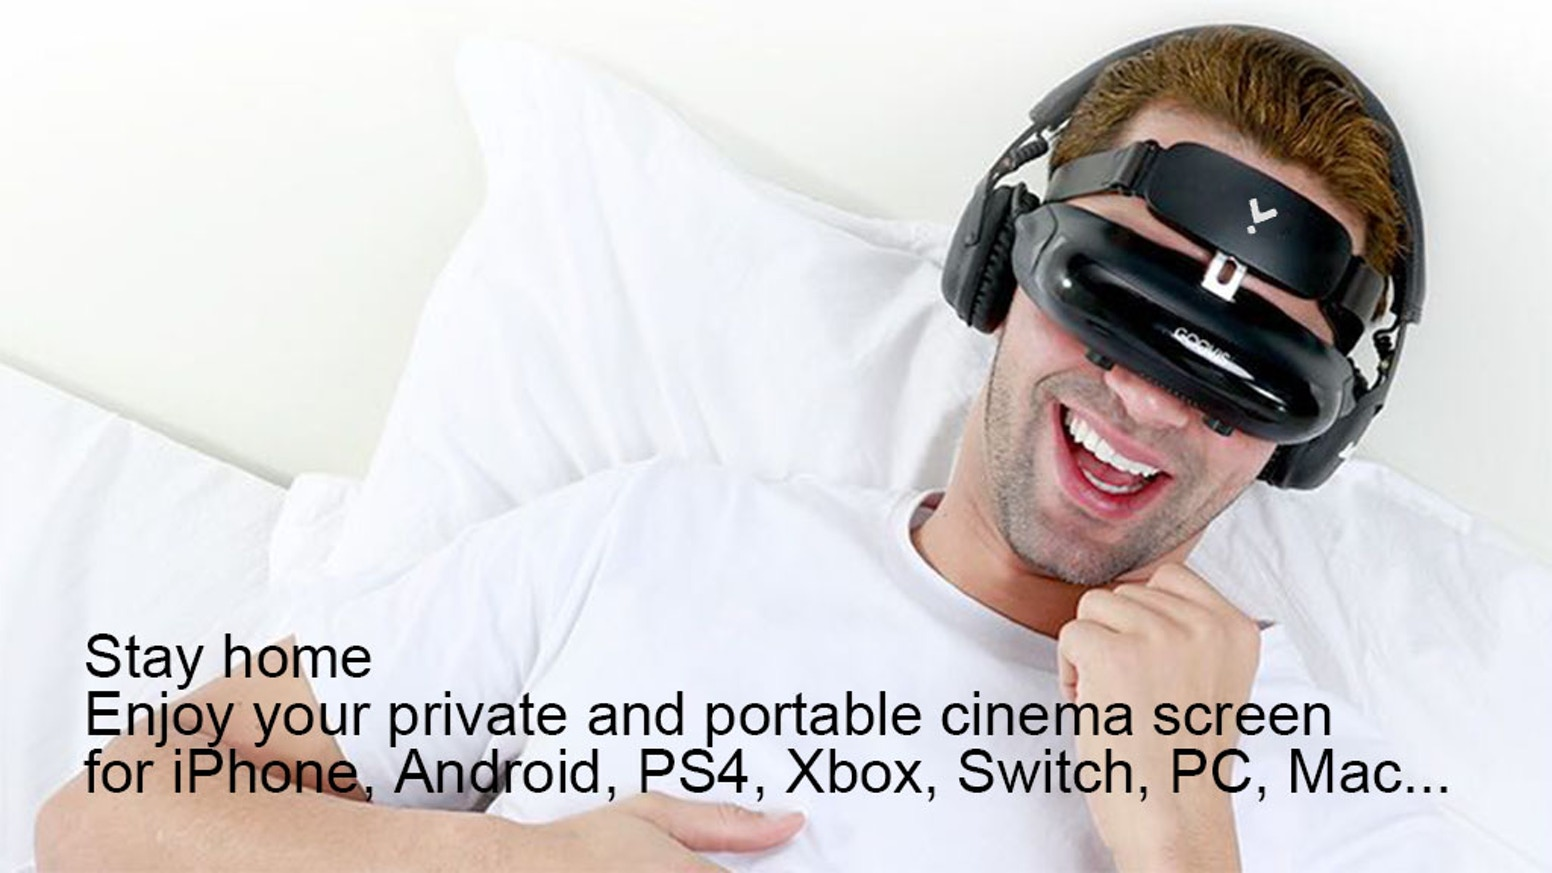 Escape anywhere with immersive big-screen quality entertainment in a pocket-sized head-mounted display.